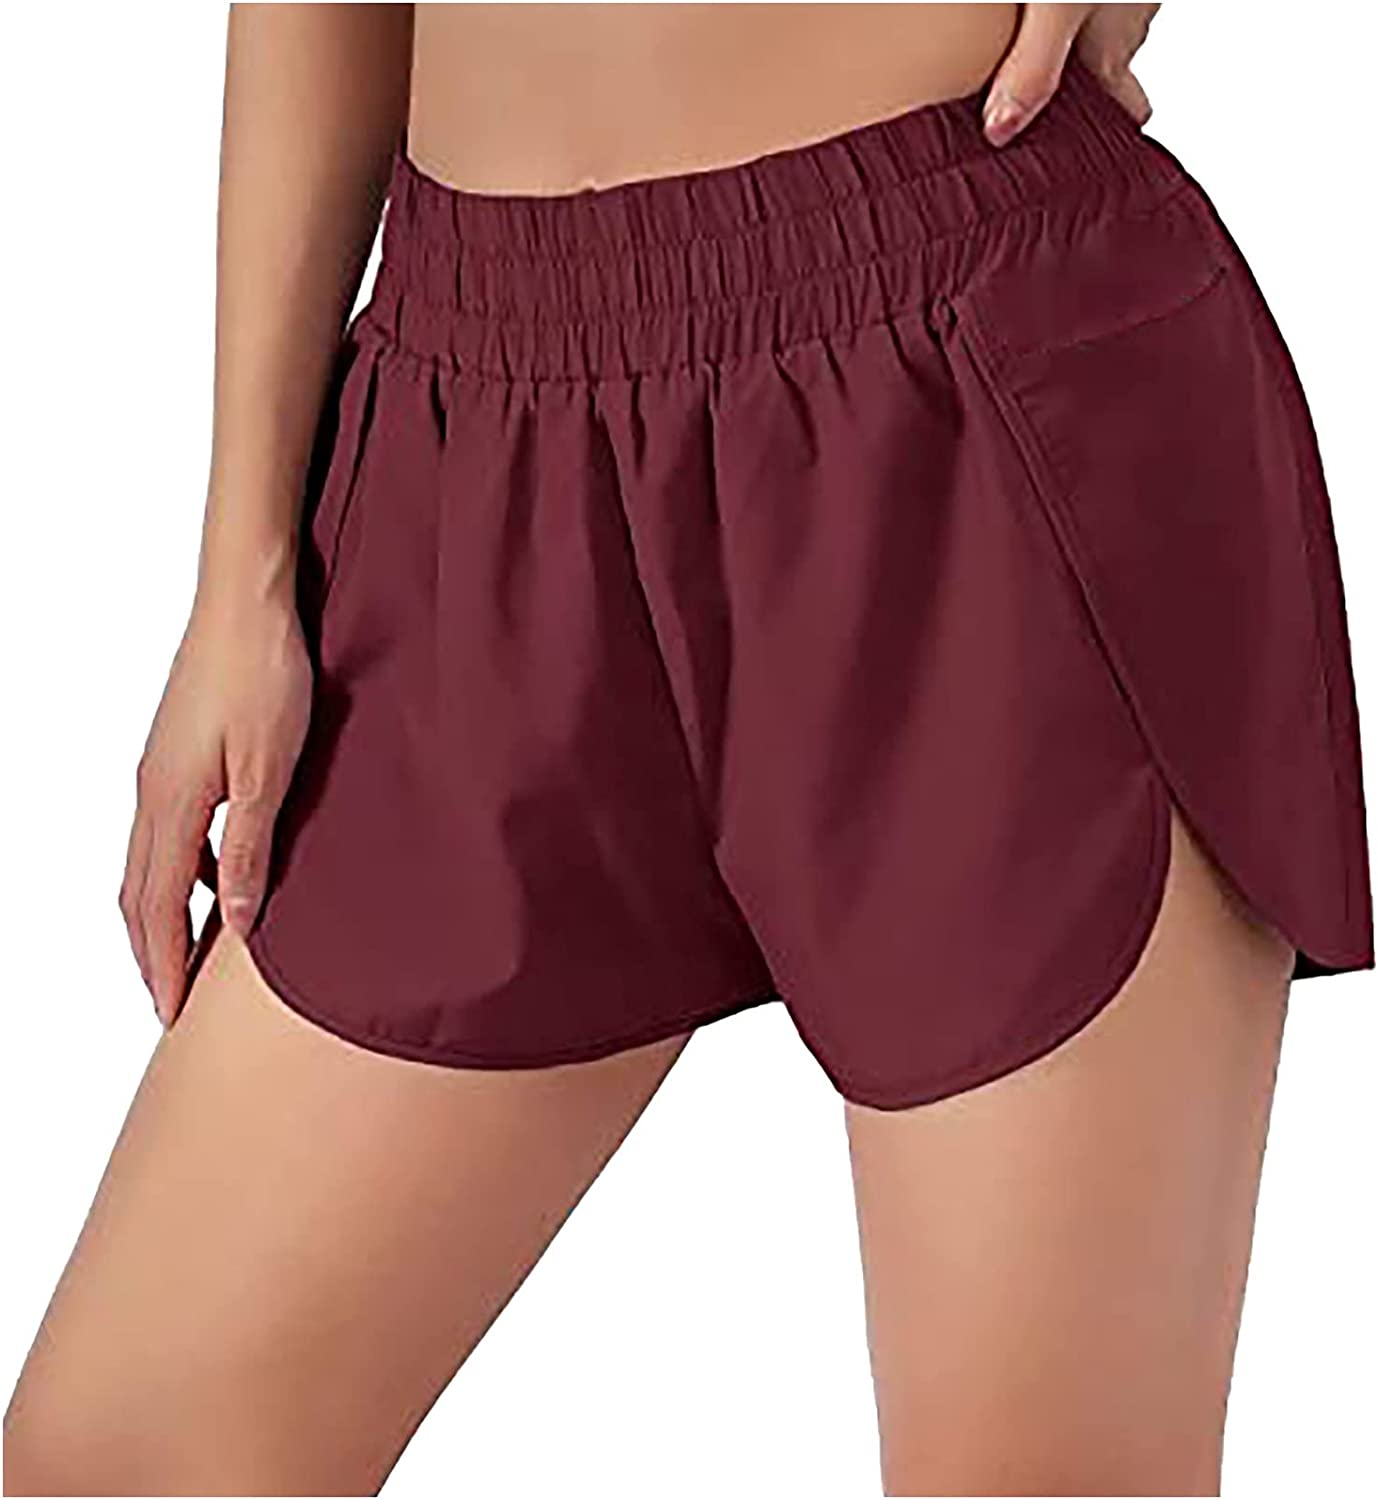 Athletic Yoga Shorts for Women Running Shorts with Pocket Elastic Waist Loose Quick-Dry Workout Sports Gym Shorts